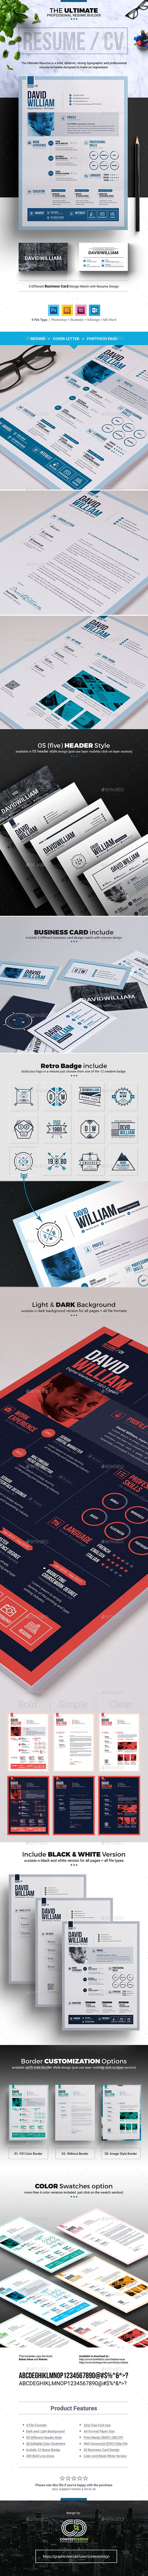 Job Resume / CV Template | The Ultimate Professional Resume Builder ...